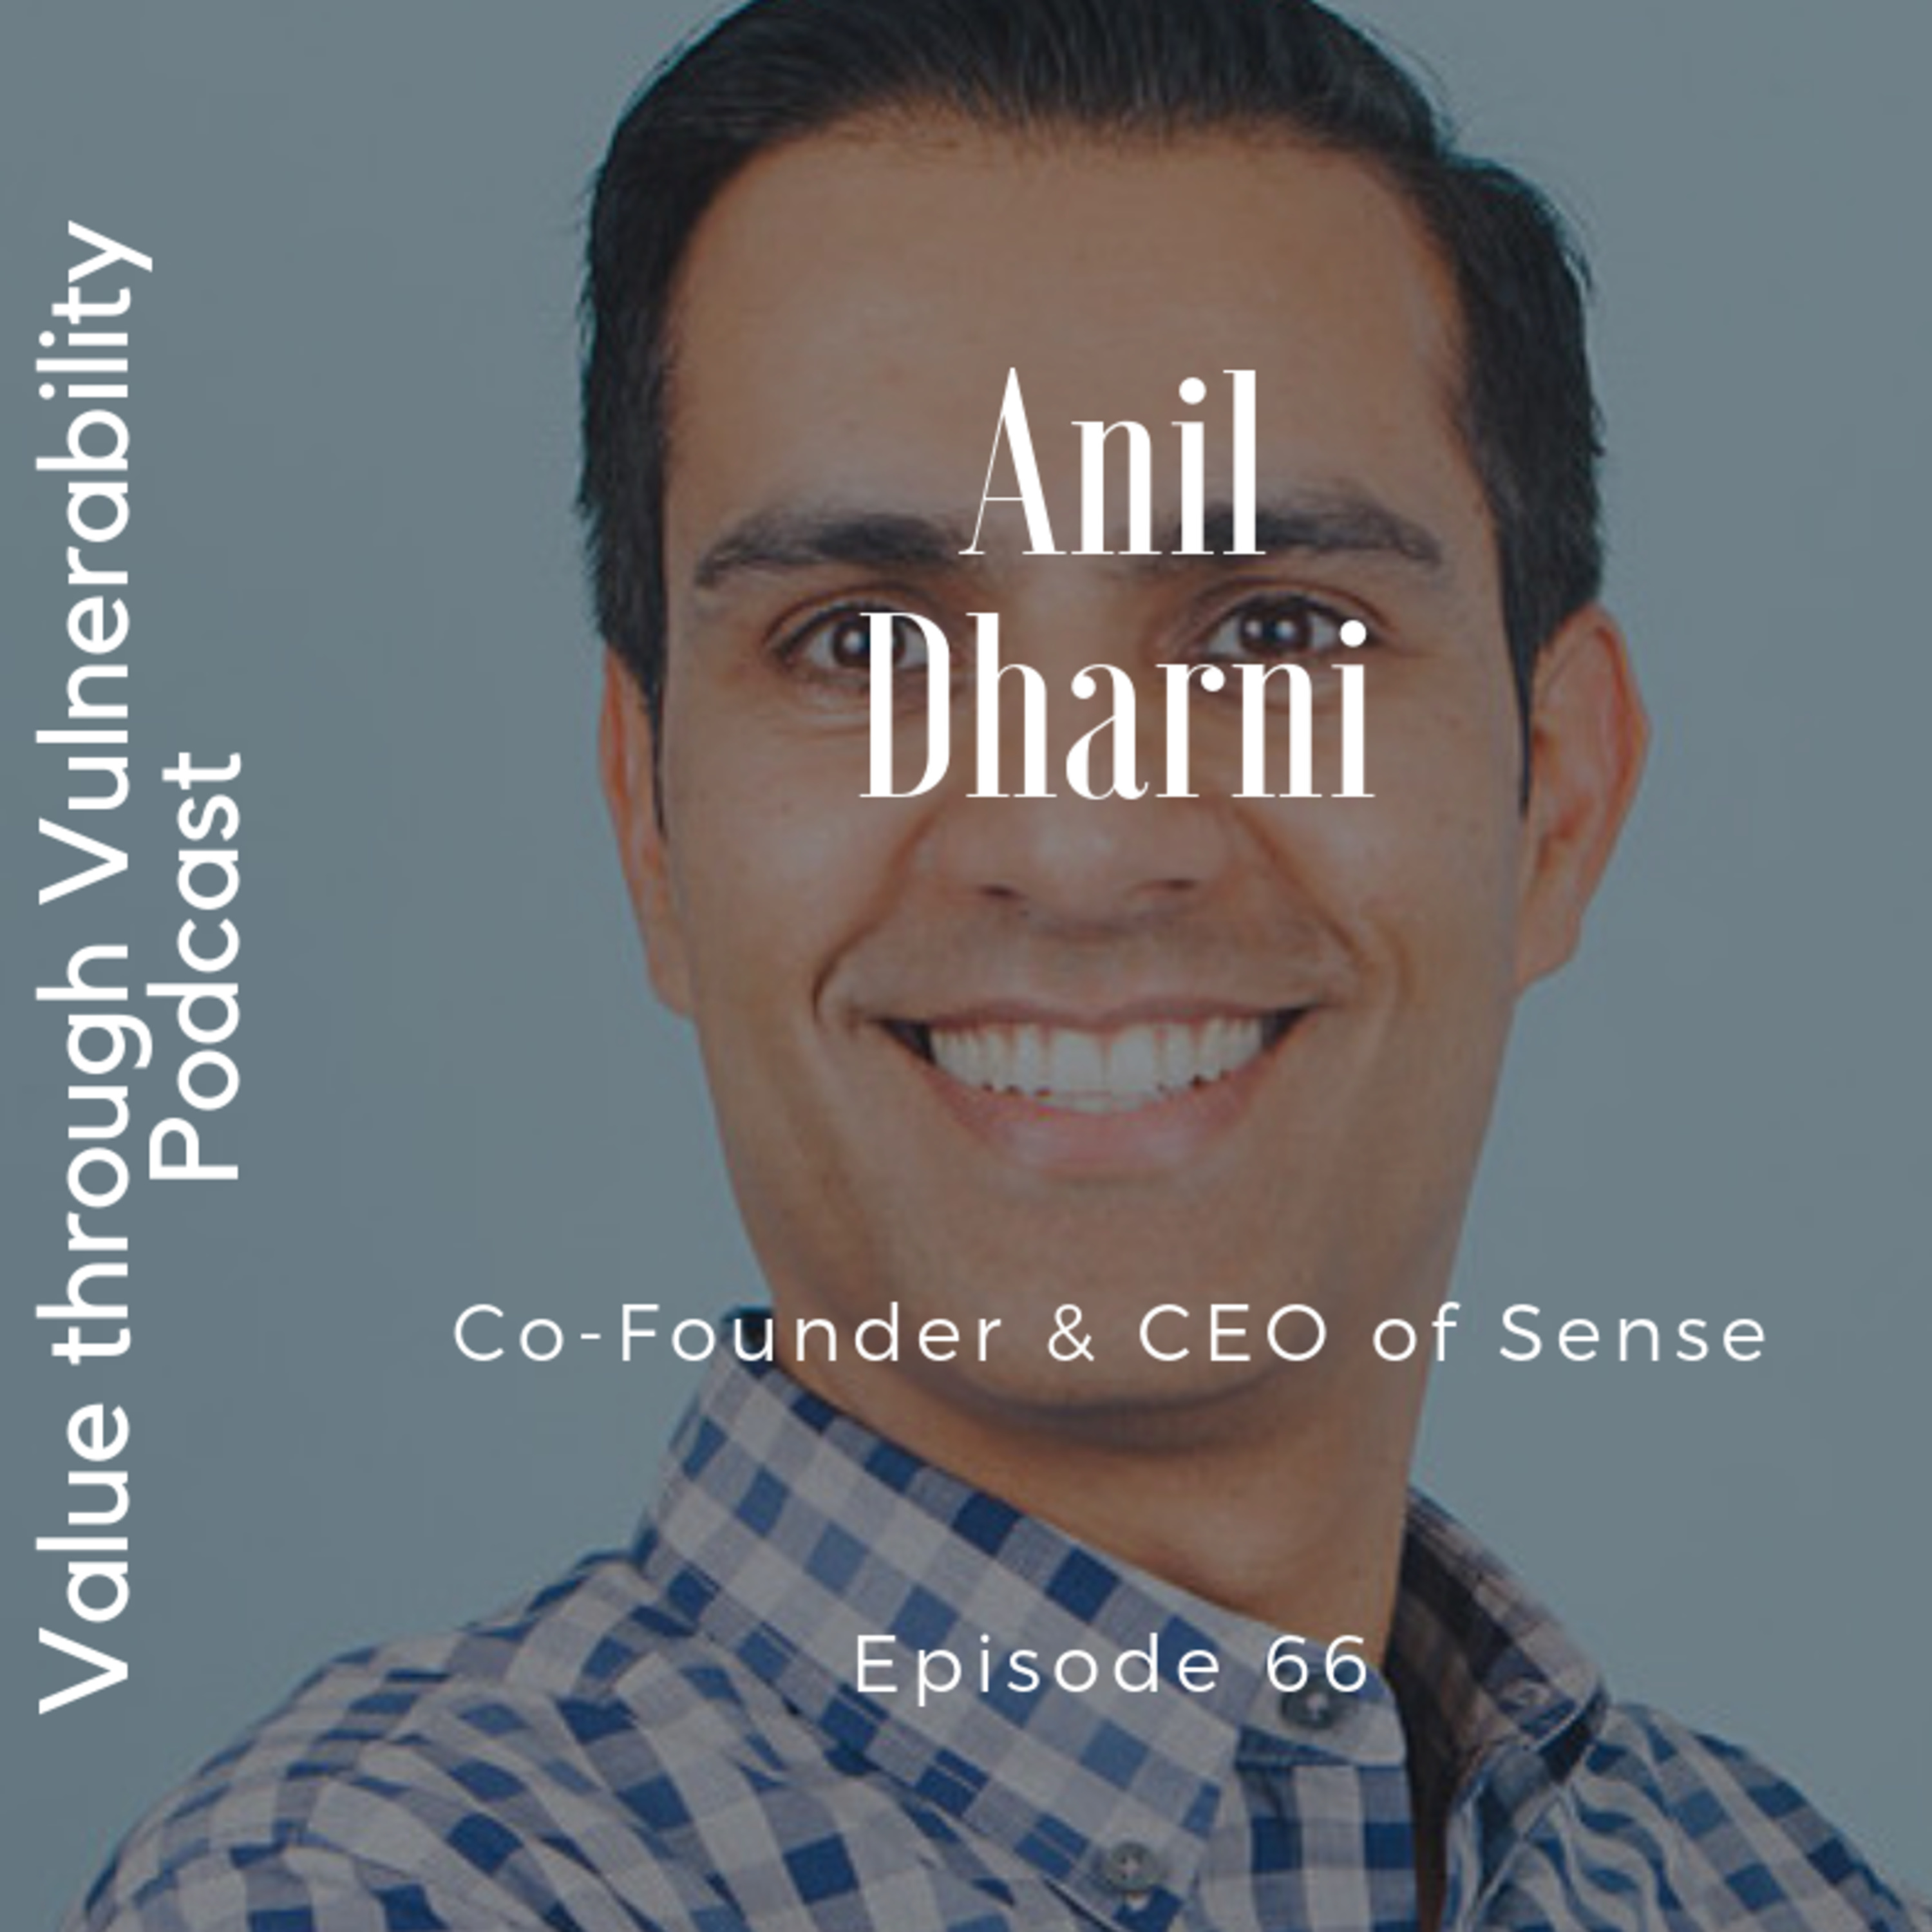 Episode 66 - Anil Dharni, Co-Founder & CEO of Sense